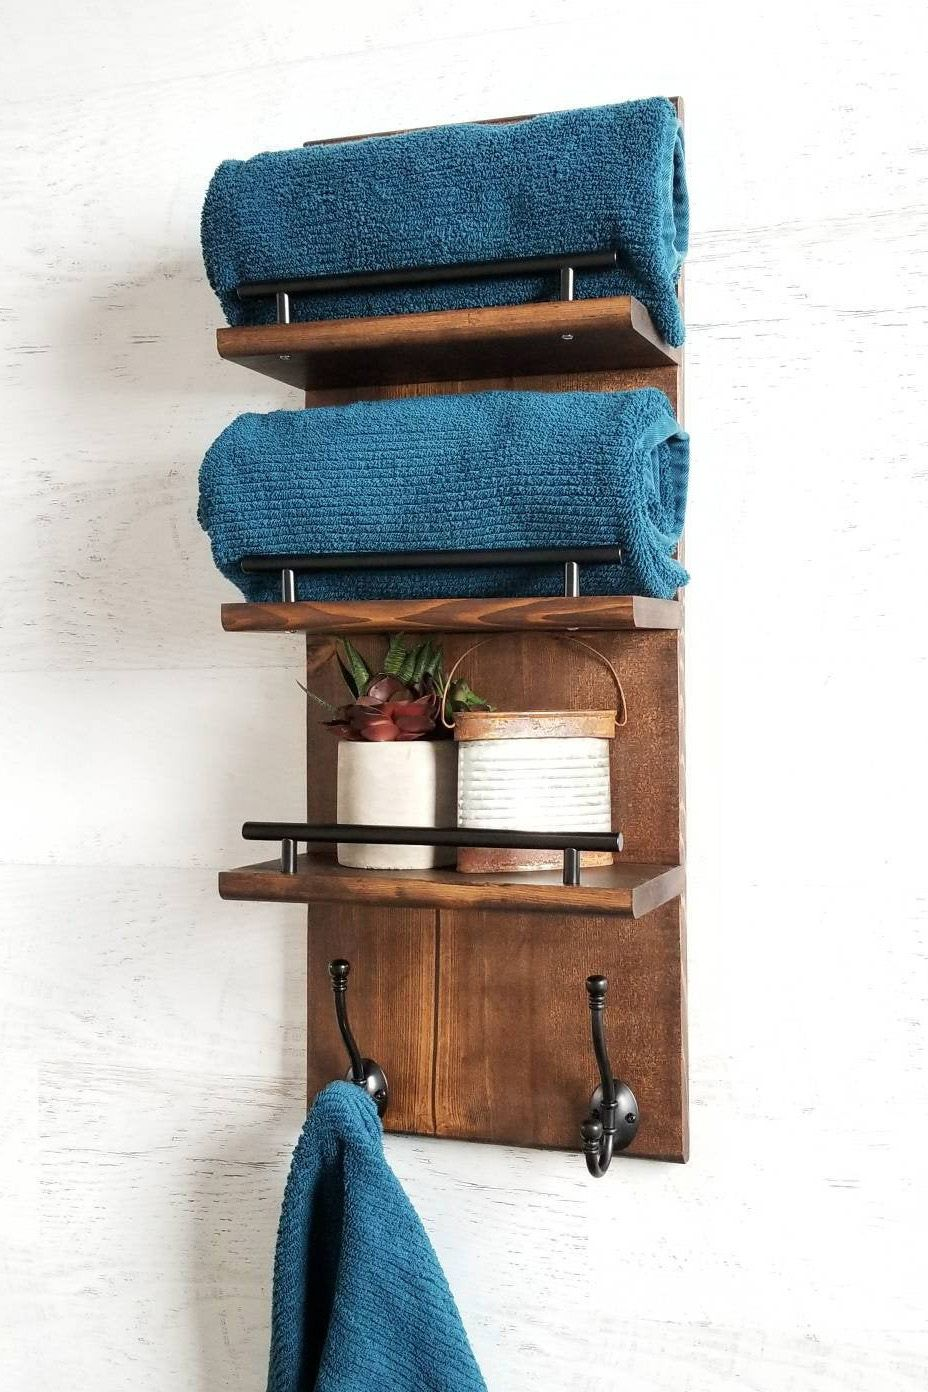 3 Tier Bathroom Floating Shelf Organizer Bath Towel Rack